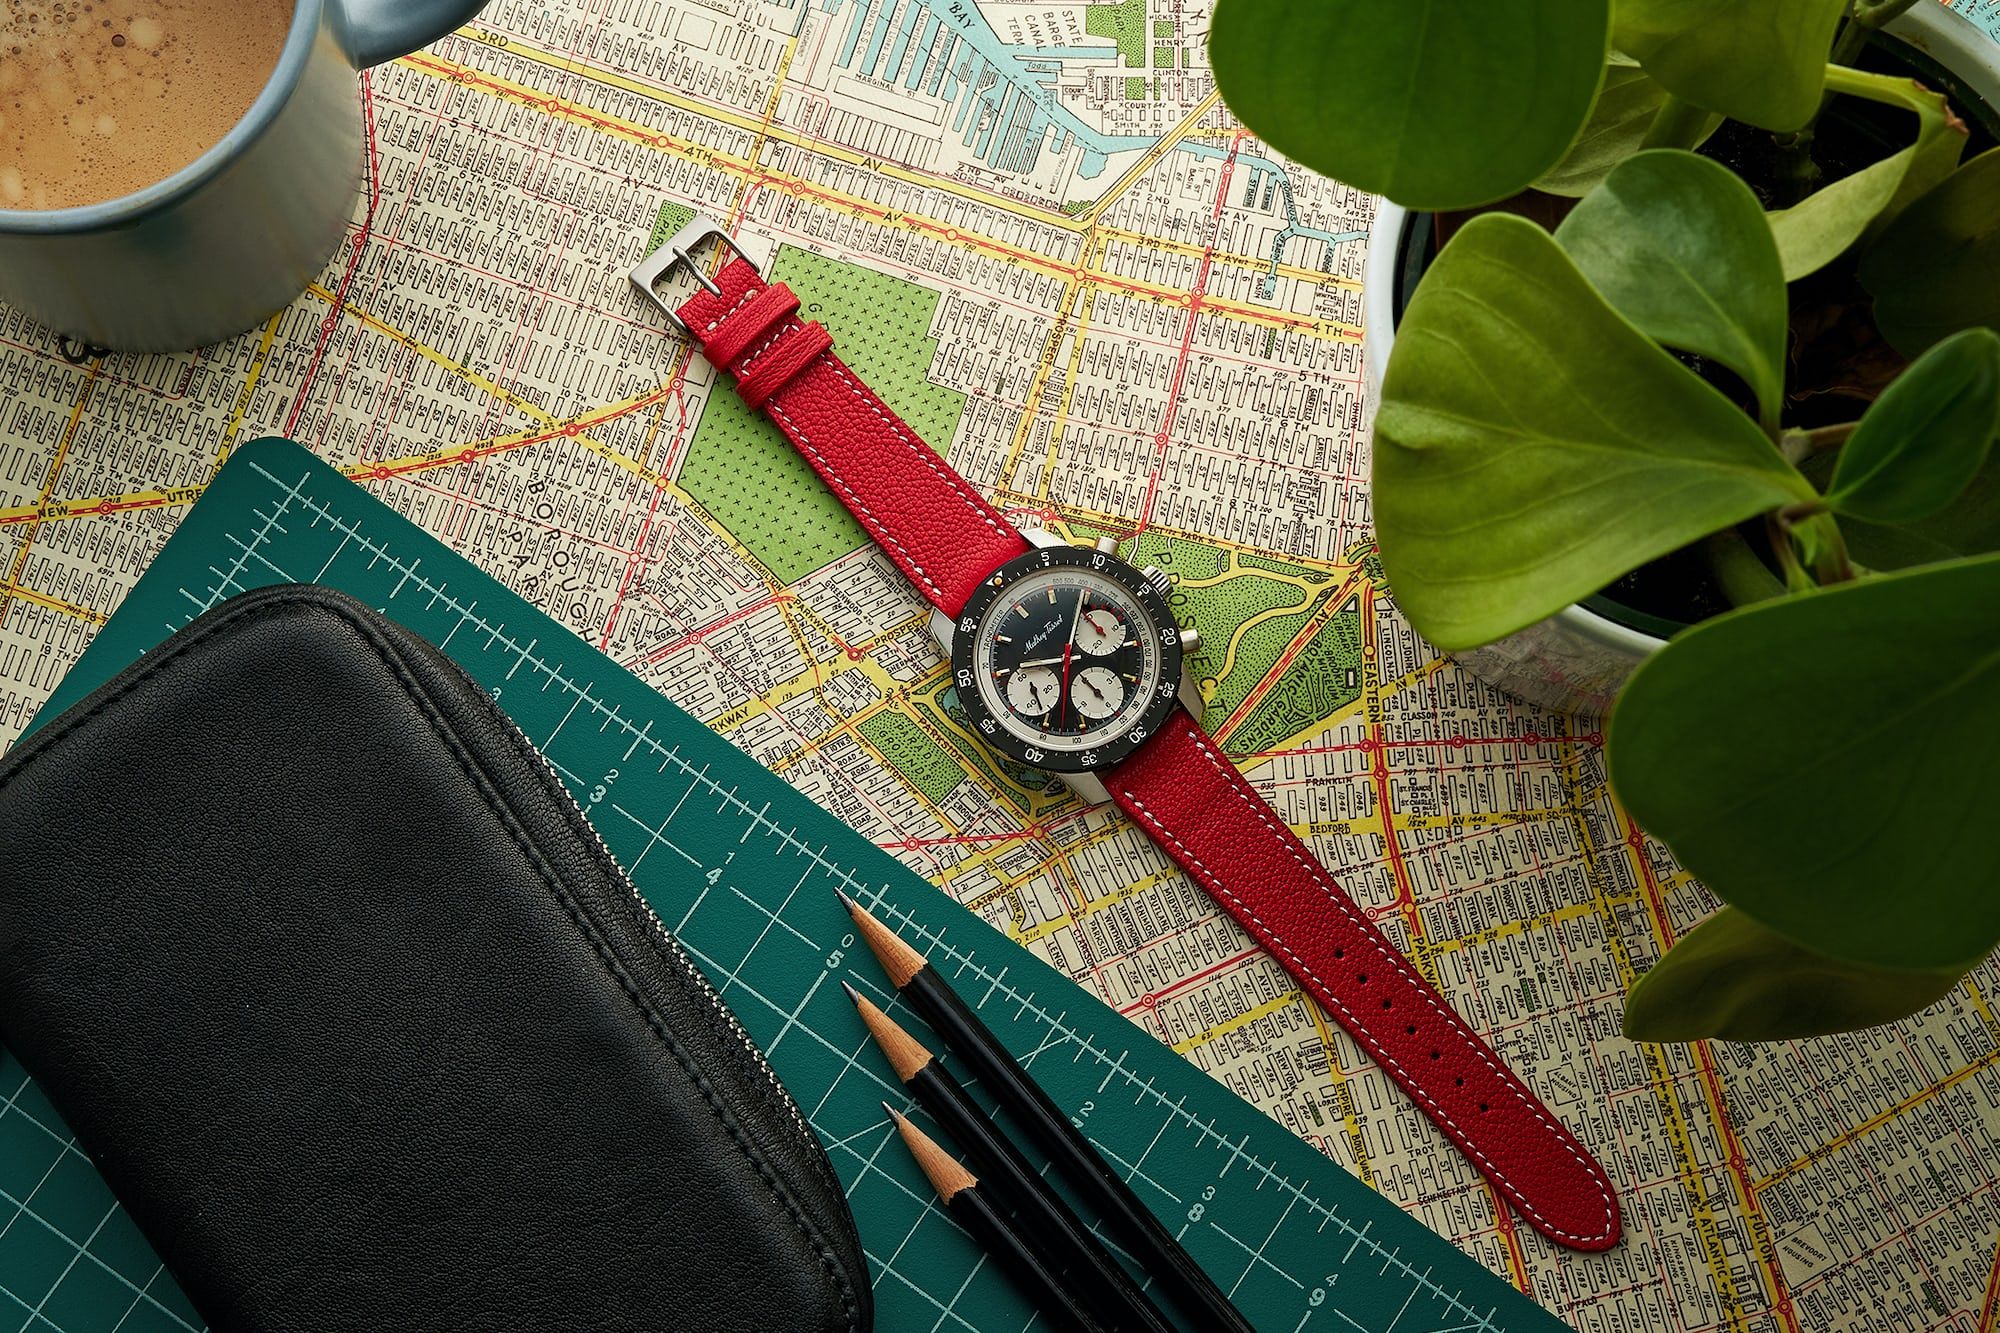 In The Shop - Vintage Watches: A 1968 Omega Speedmaster Professional Ref. 145.012, A 1976 Seiko Diver 'Captain Willard,' And A 1970s Mathey-Tissot Chronograph